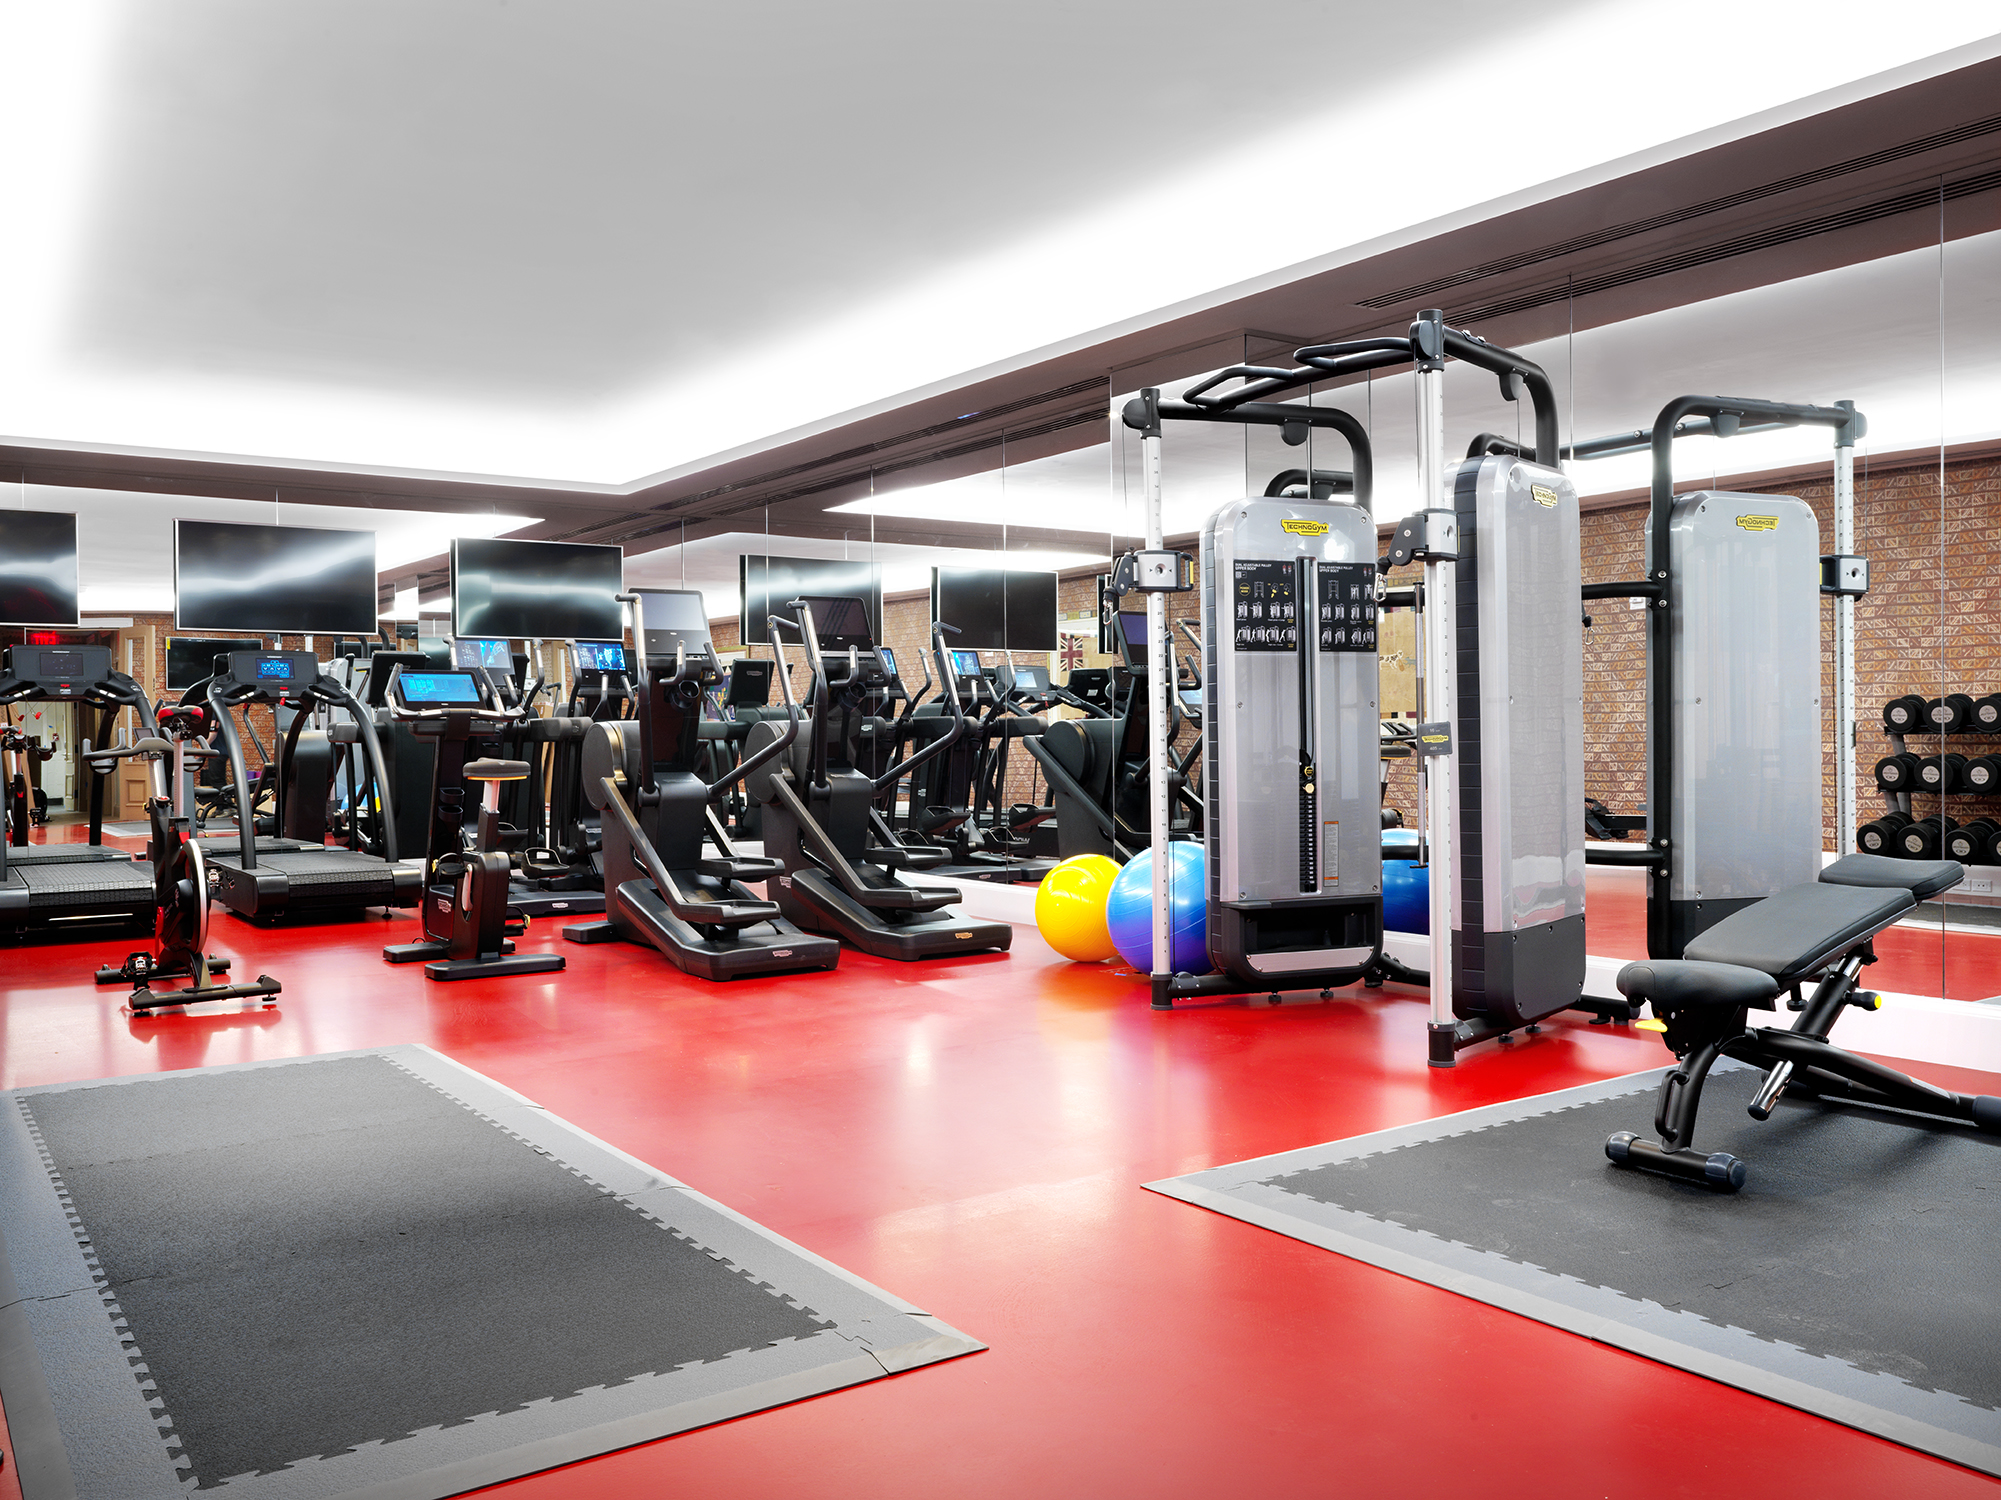 Firmdale hotels the whitby hotel the whitby gym